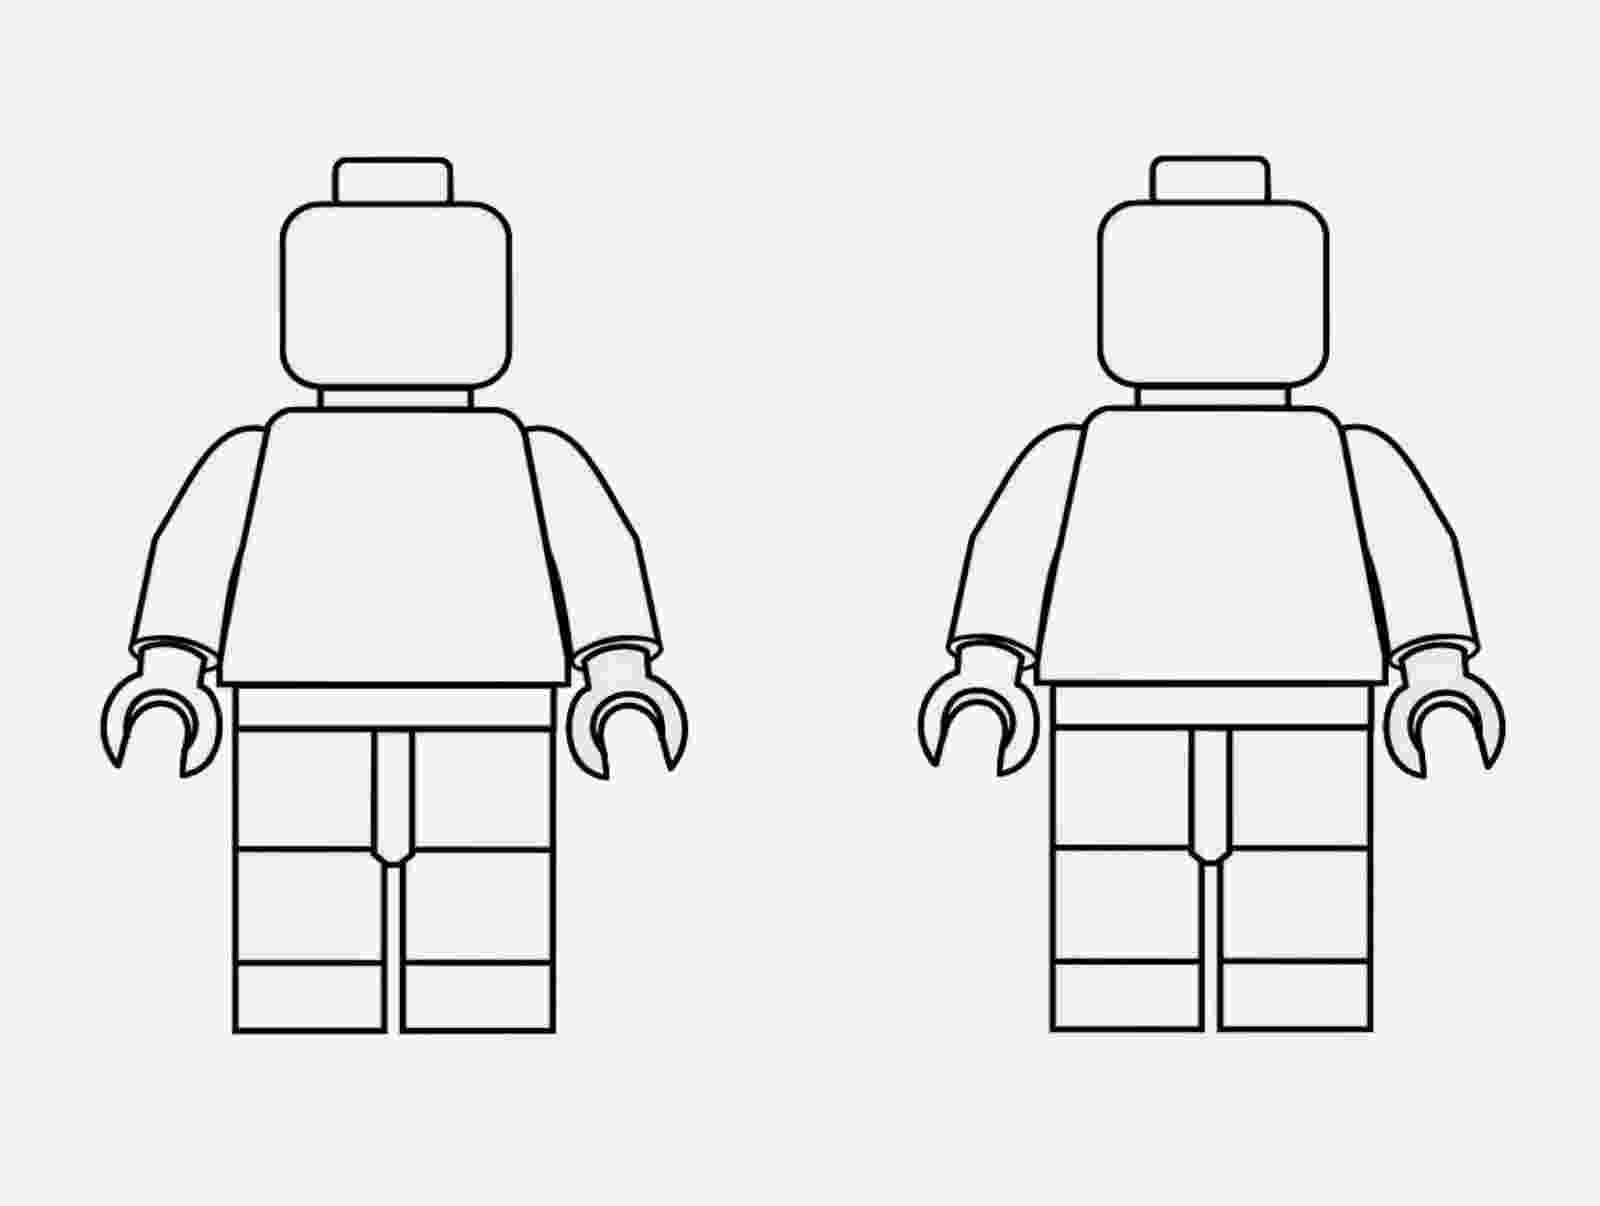 lego pages to color spring time treats lego men coloring page lego pages to color